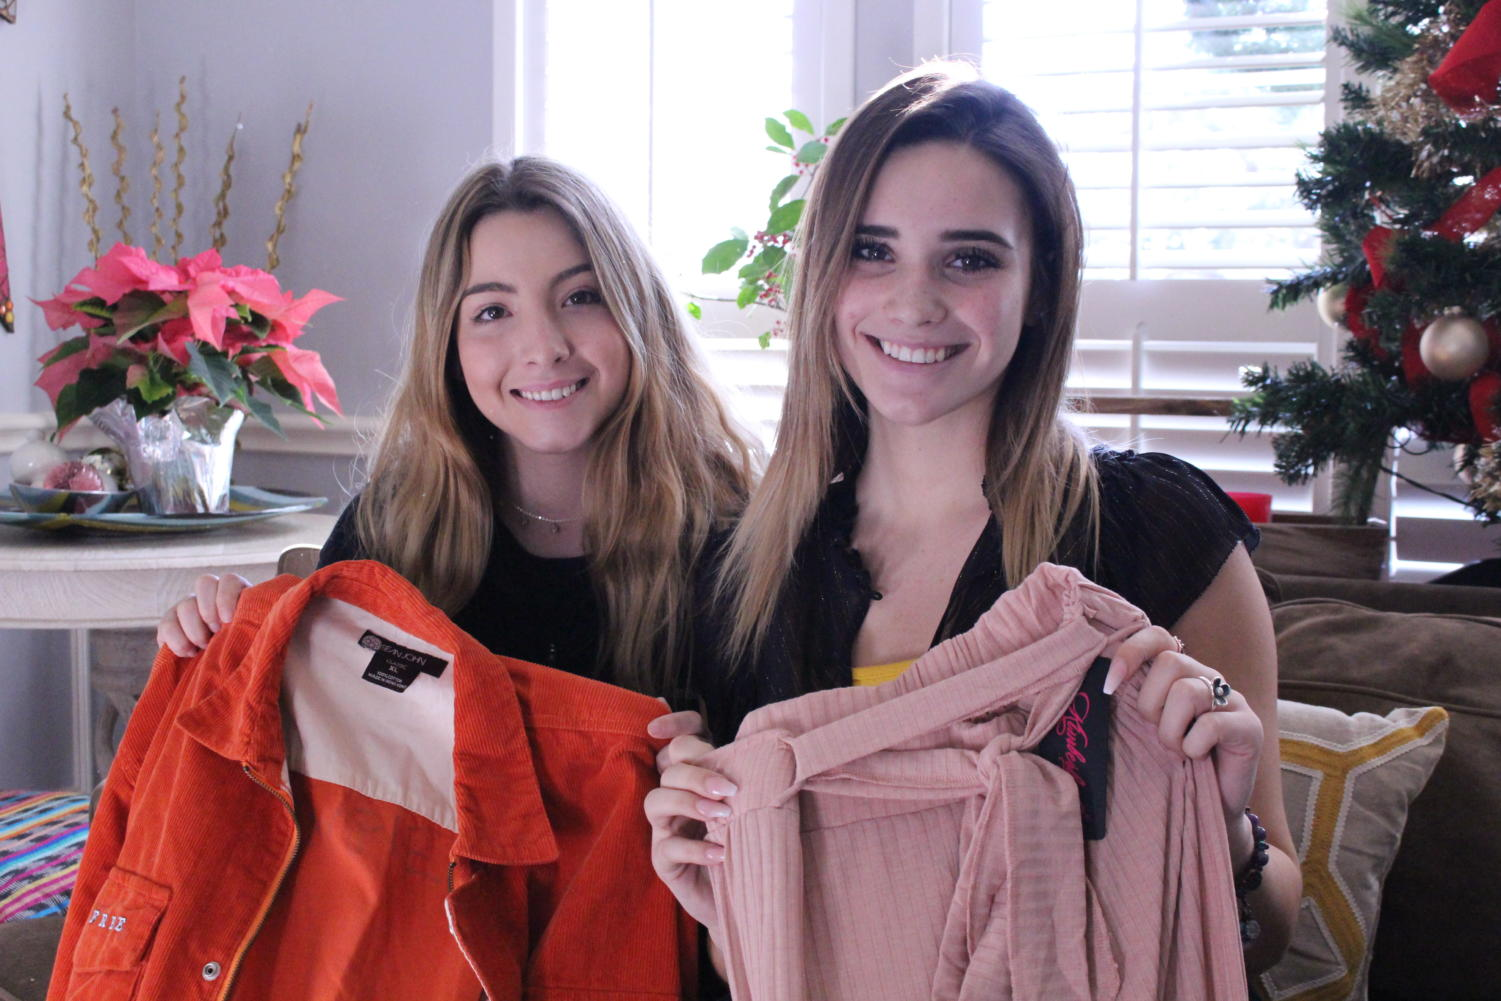 Coppell High School junior Hannah Cechin and CHS graduate Macy Kincaid decided to get into fashion and begin their own fashion resale company, Via Free. Kincaid and Cechin have decided to donate a portion of their profit to a charity and Kincaid plans on pursuing a fashion-related career in college.